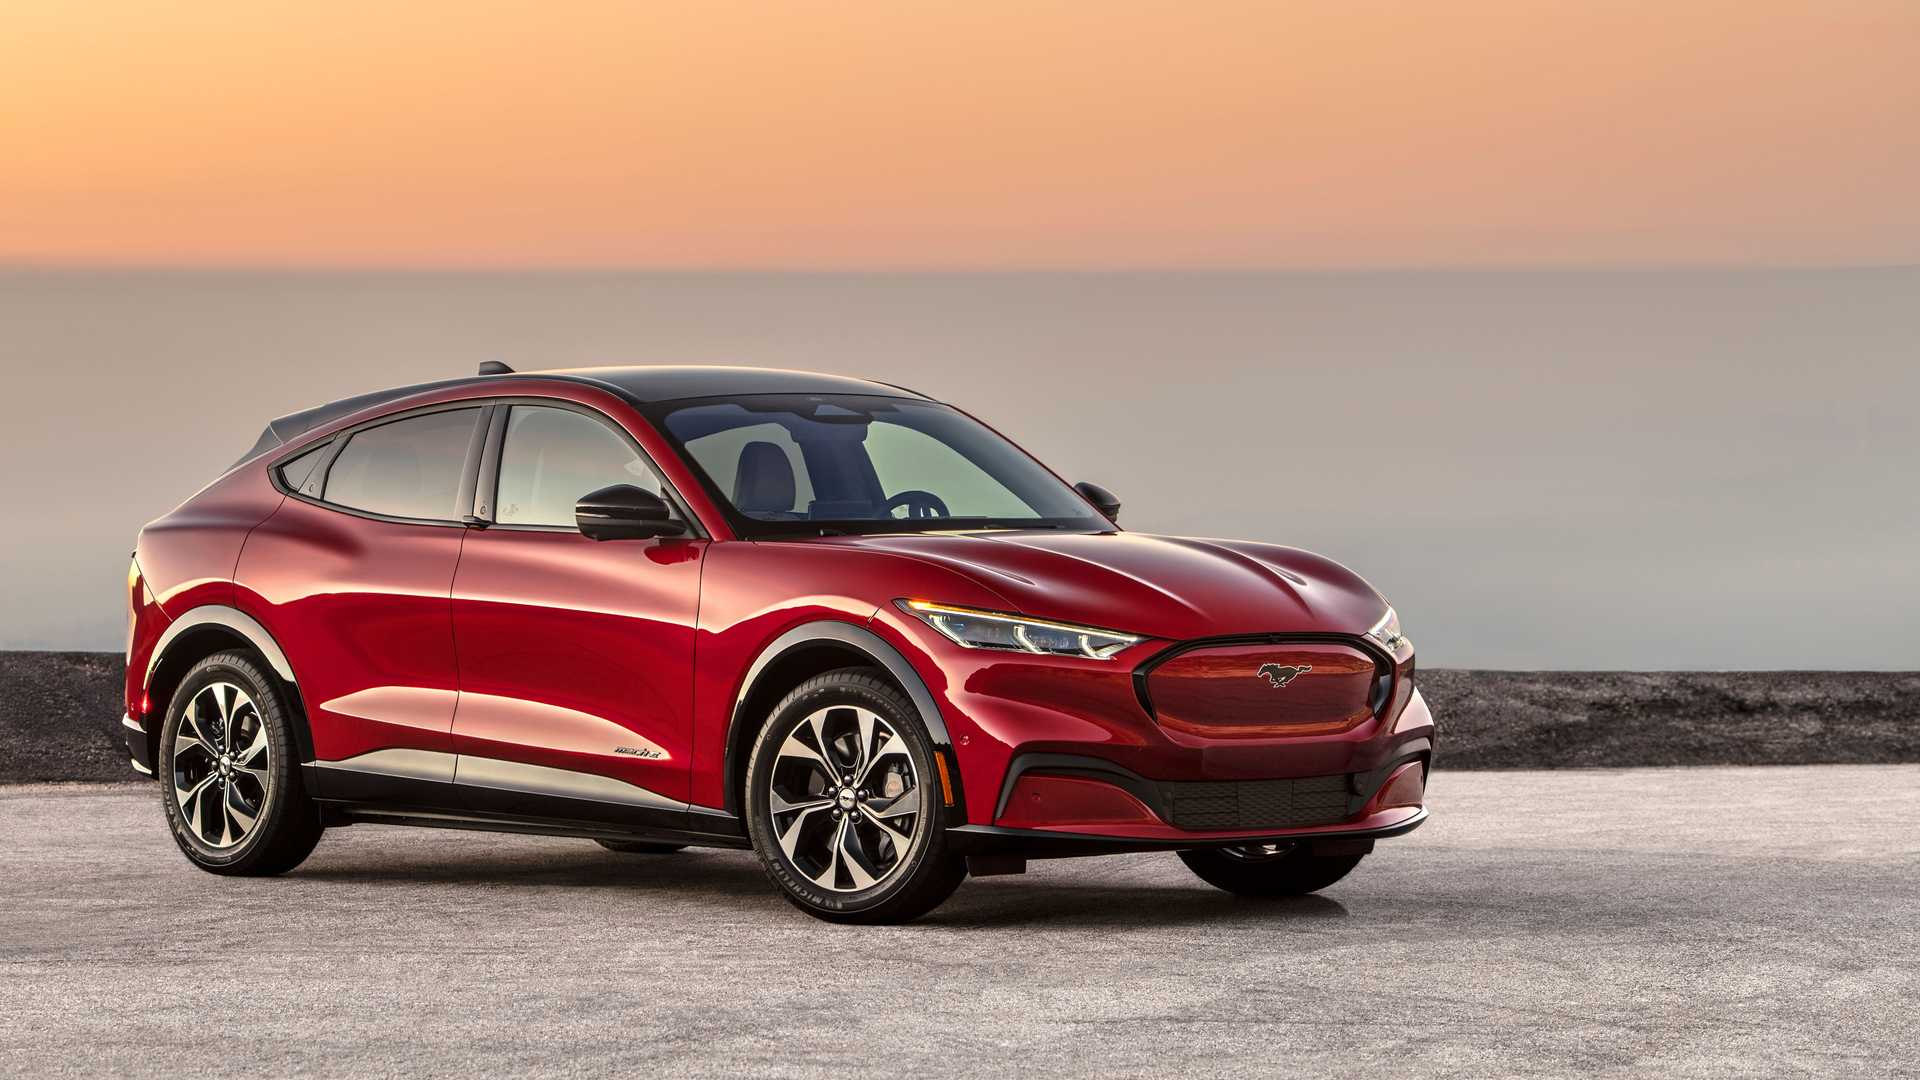 Ford Mustang Mach-Es, built between February 24 and June 18, 2021, are affected by a quite significant recall that concerns potentially improperly bon